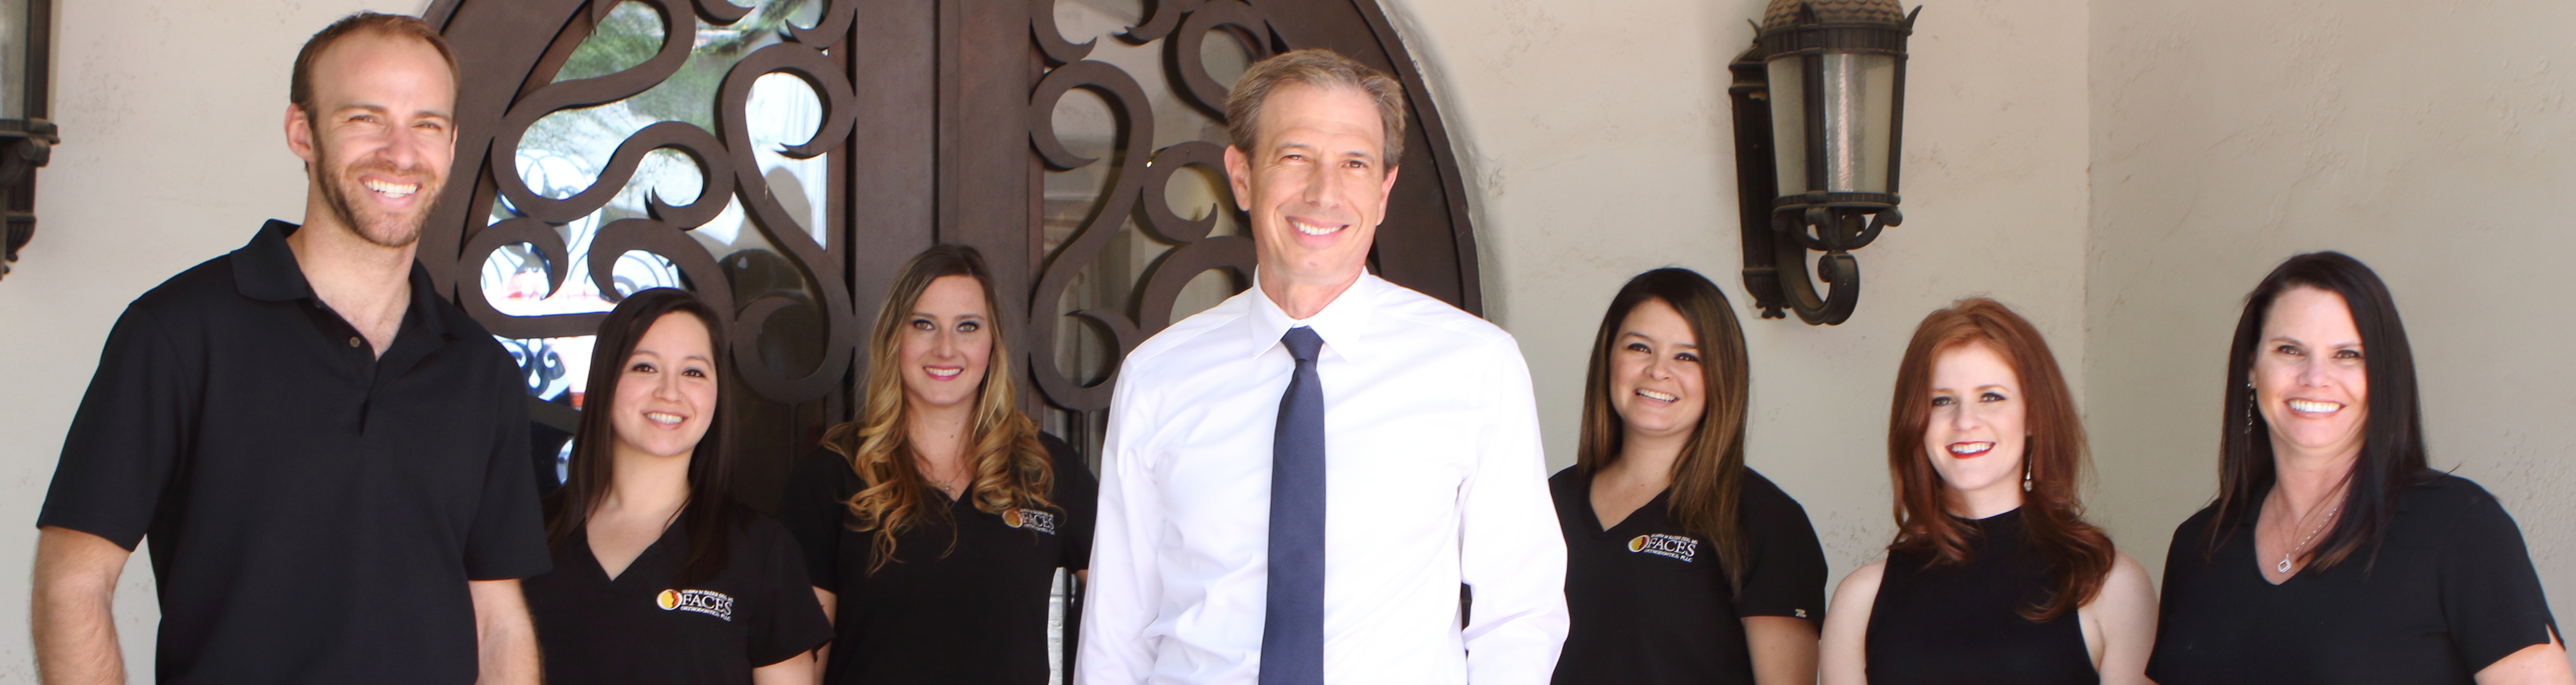 Faces Orthodontics Staff Scottsdale Braces Scottsdale Orthodontist